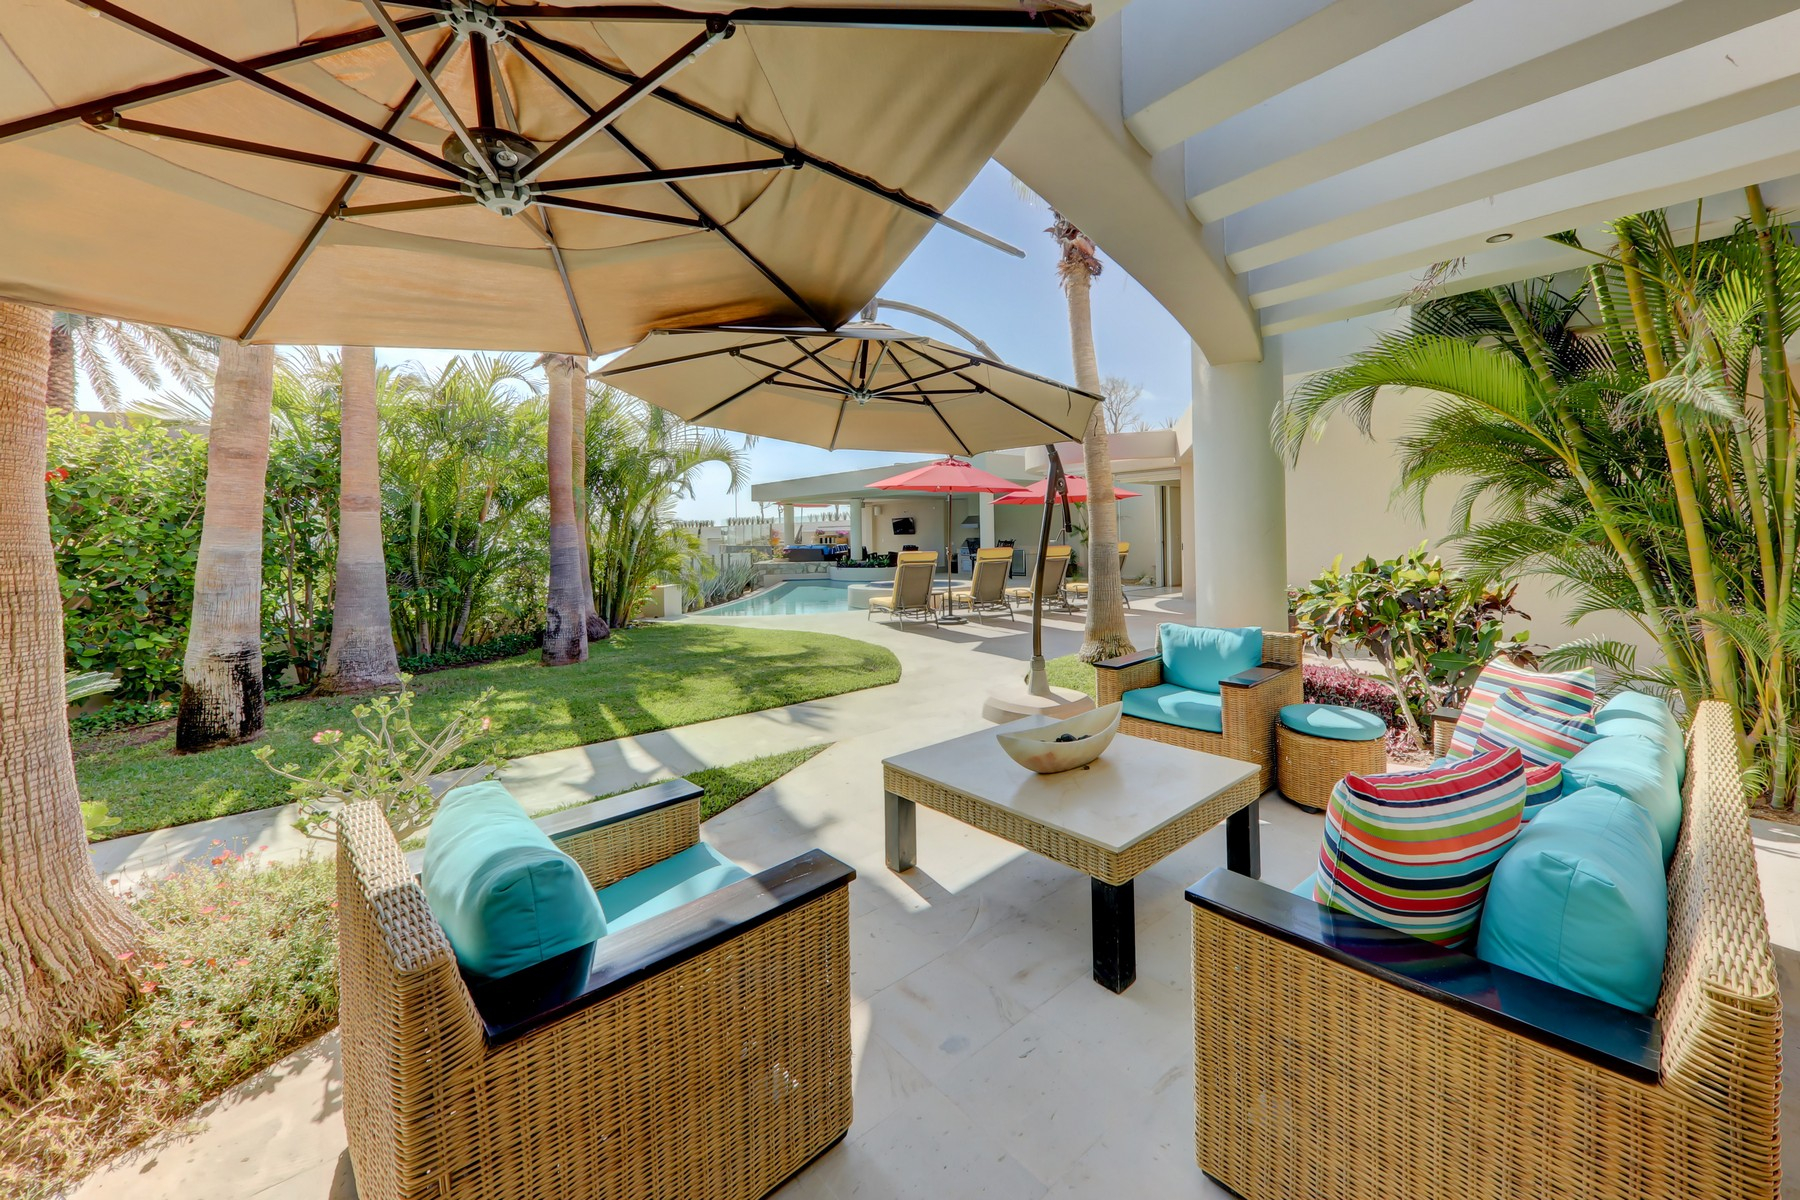 Additional photo for property listing at Villa Stephanie Villa 6 KM 18.5 Other Baja California Sur, Baja California Sur 23405 Mexico